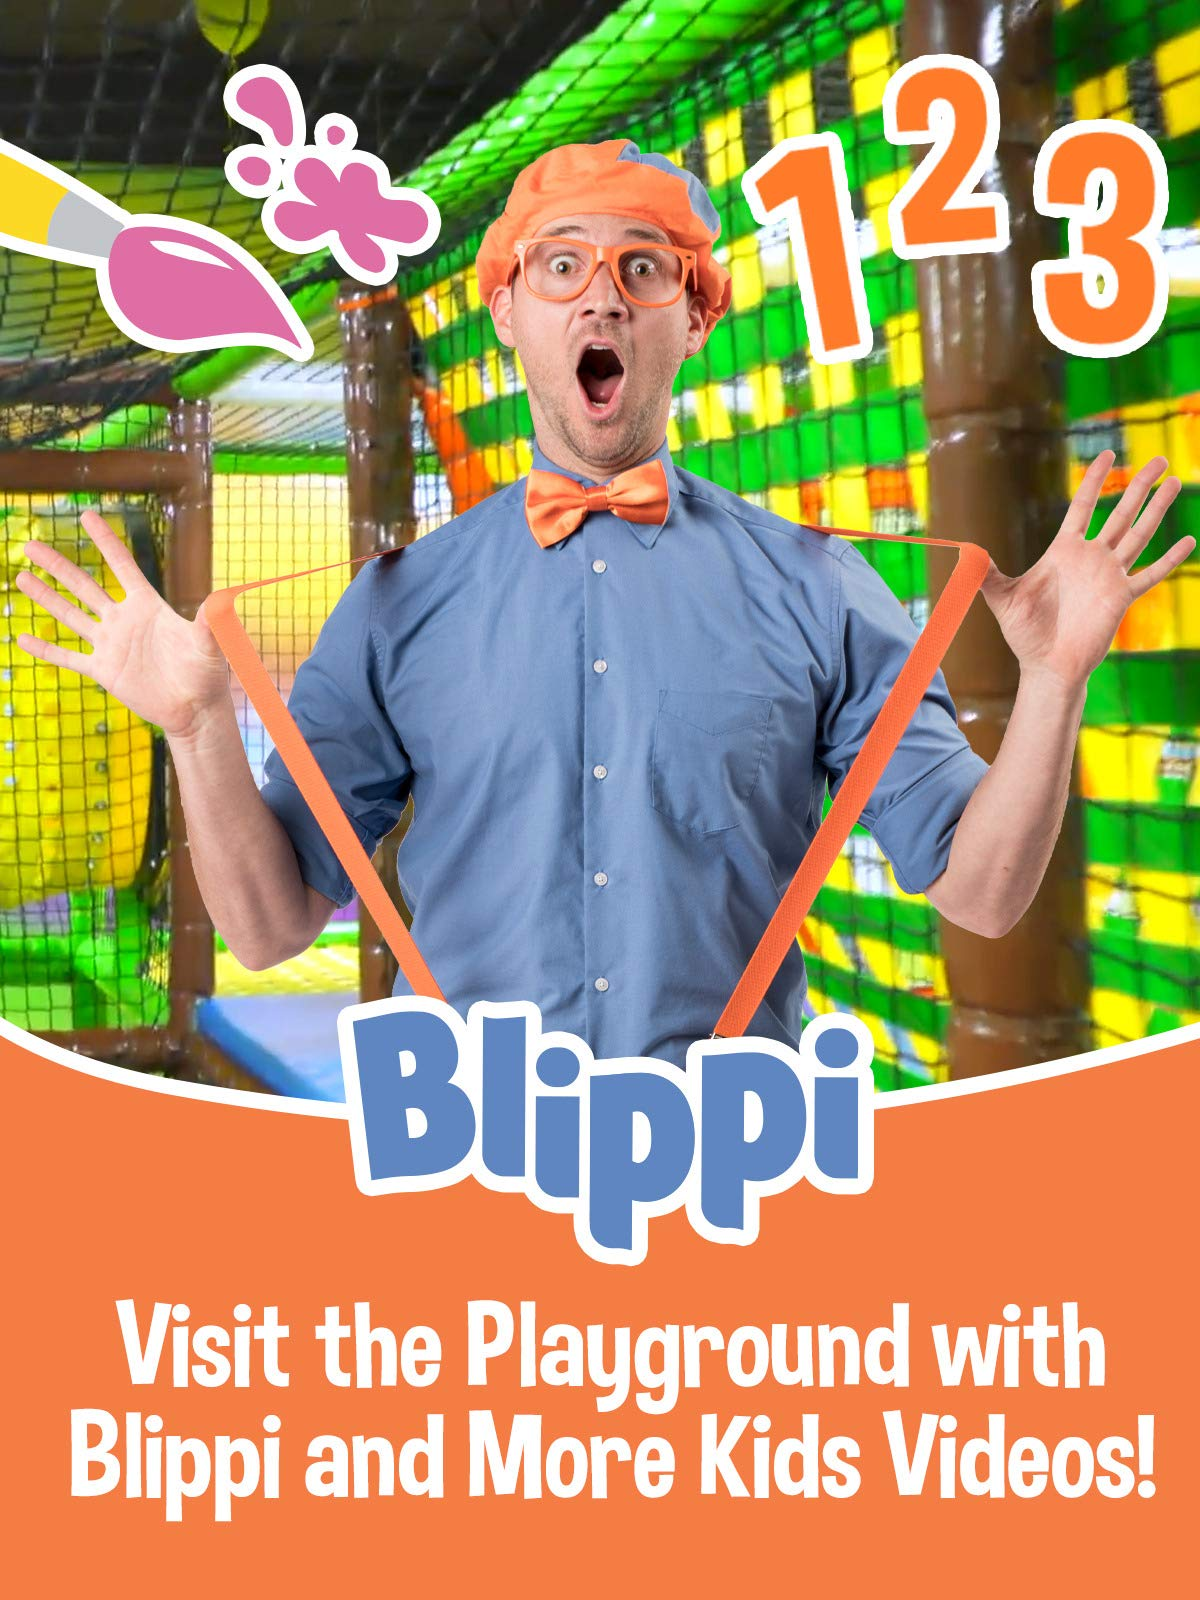 Blippi - Visit the Playground with Blippi and More Kids Videos!